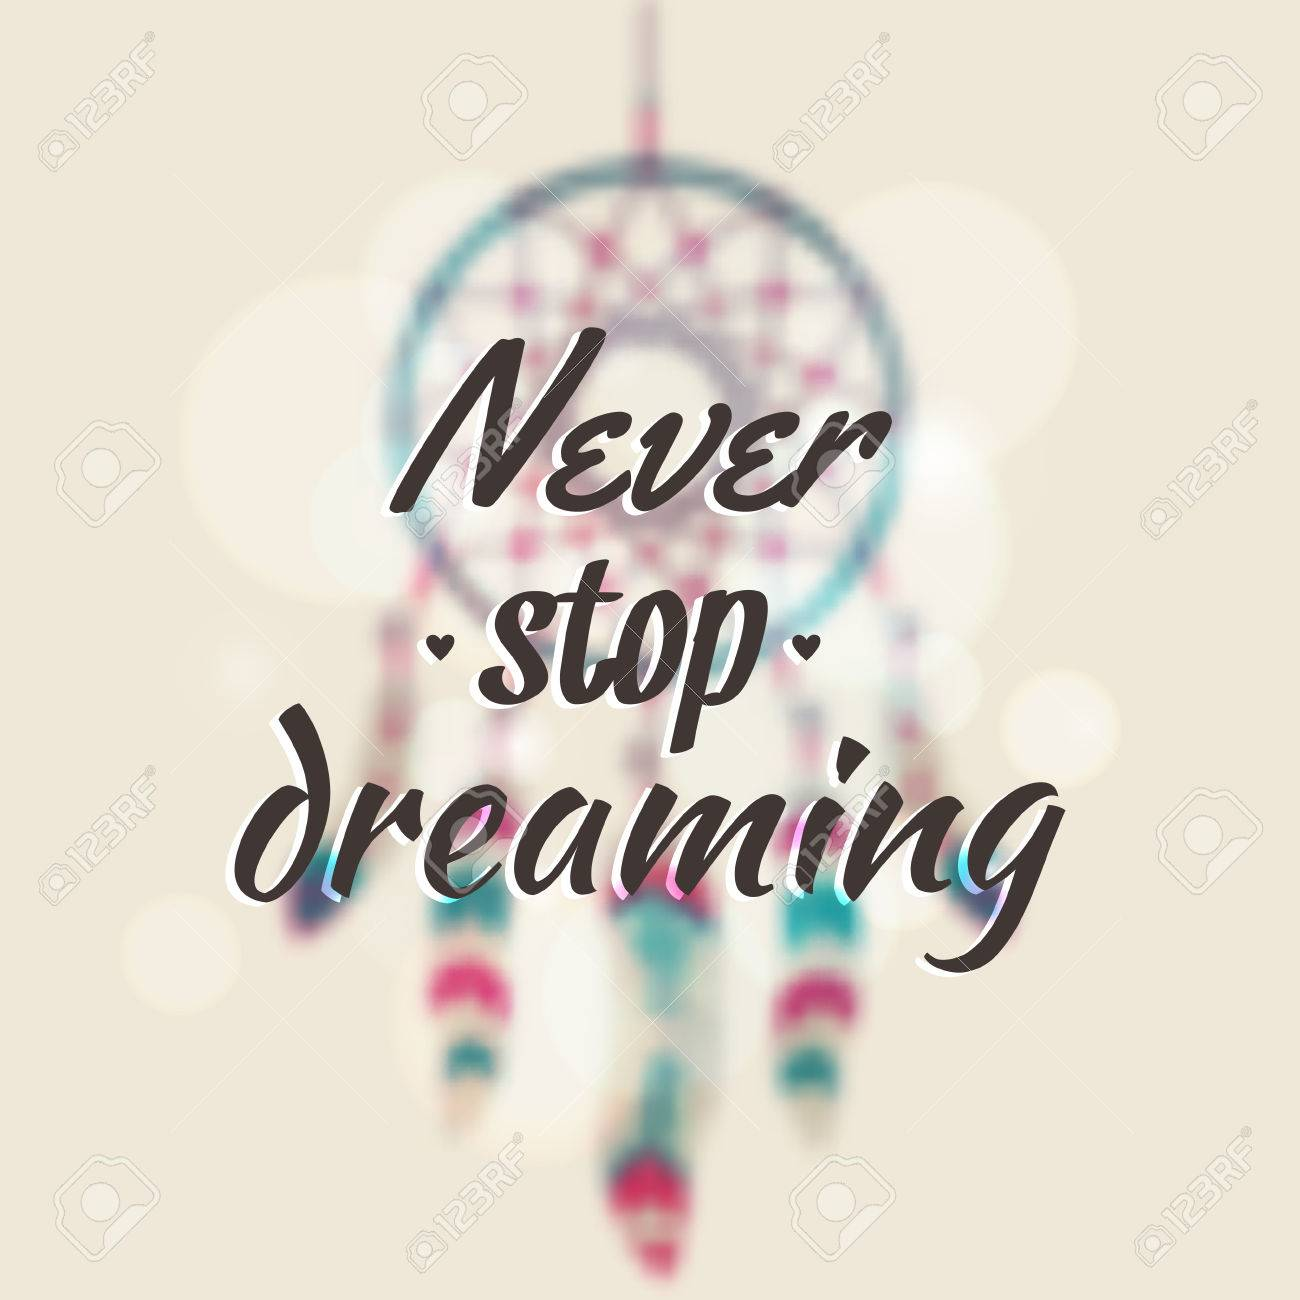 Vector Illustration With Blurred Dream Catcher And Motivational